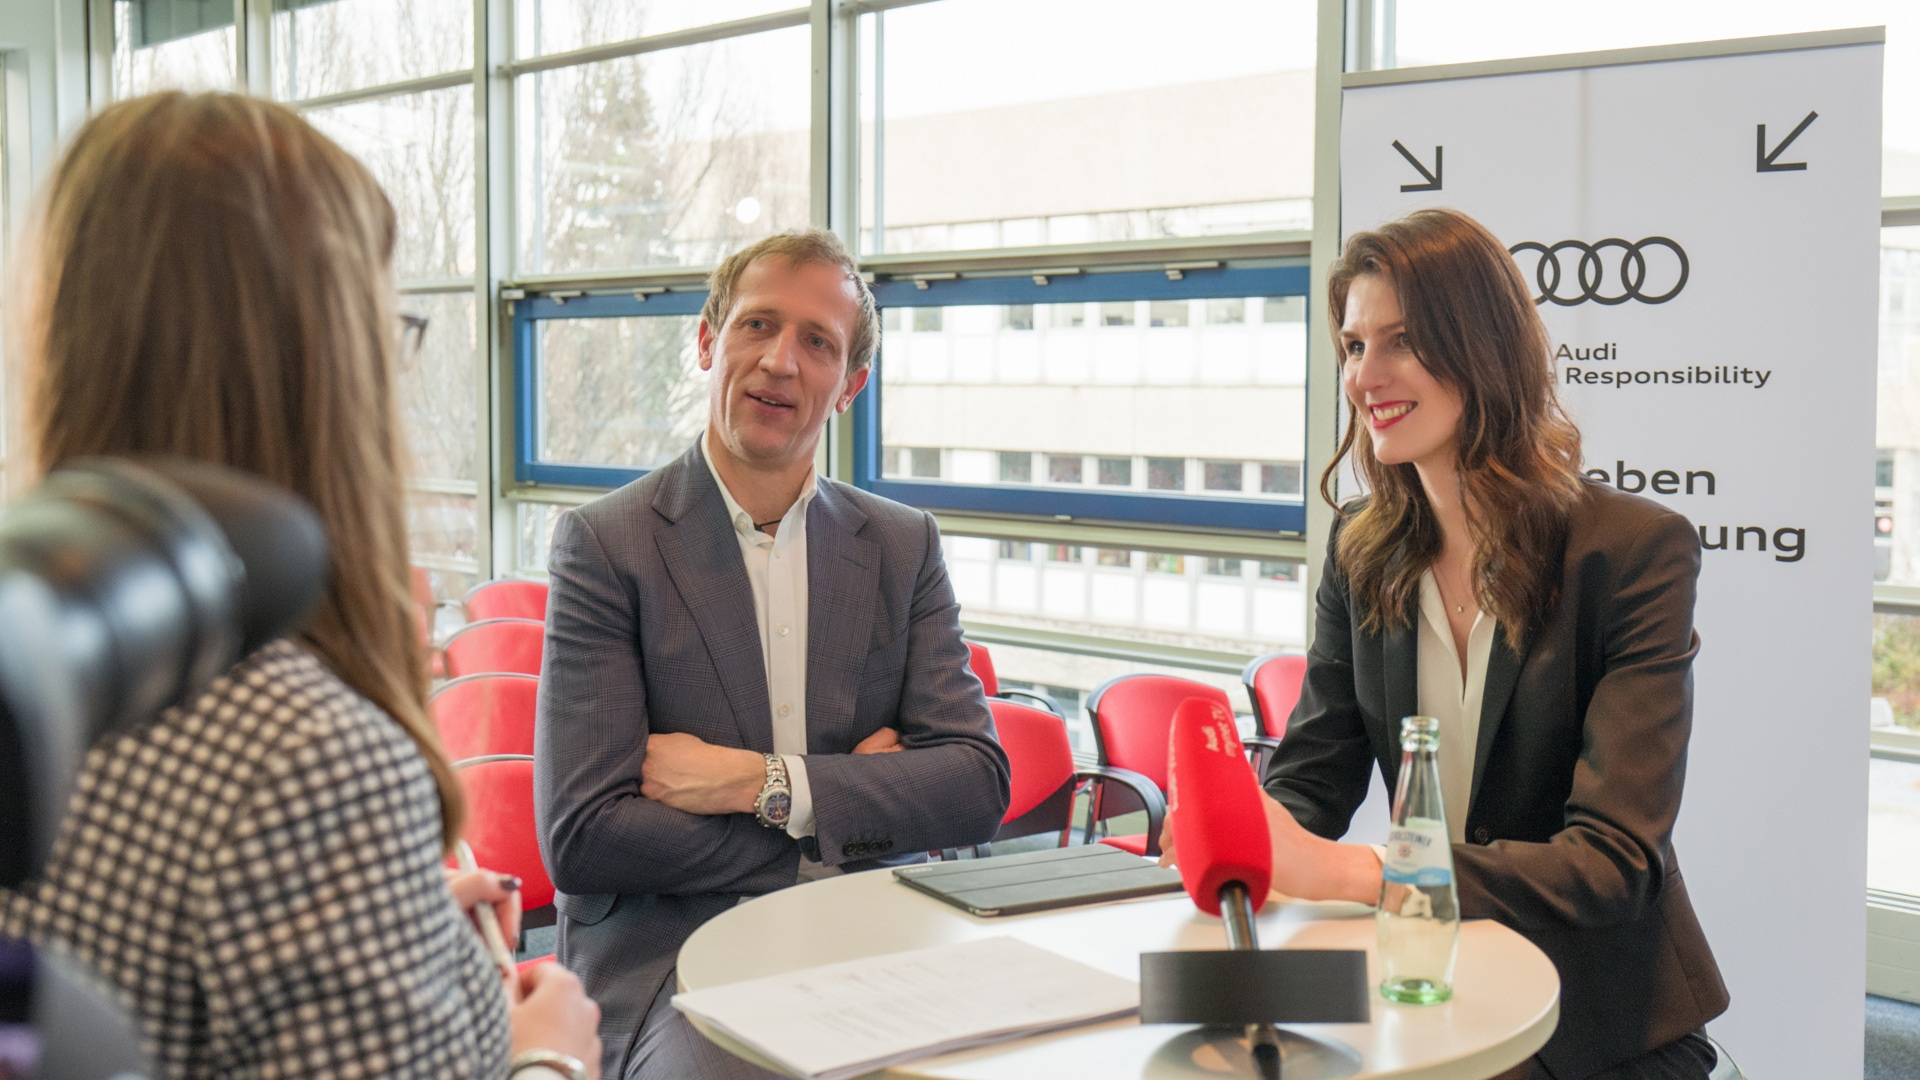 Carolin Hoyer from Unilever and Joachim Kraege in an interview